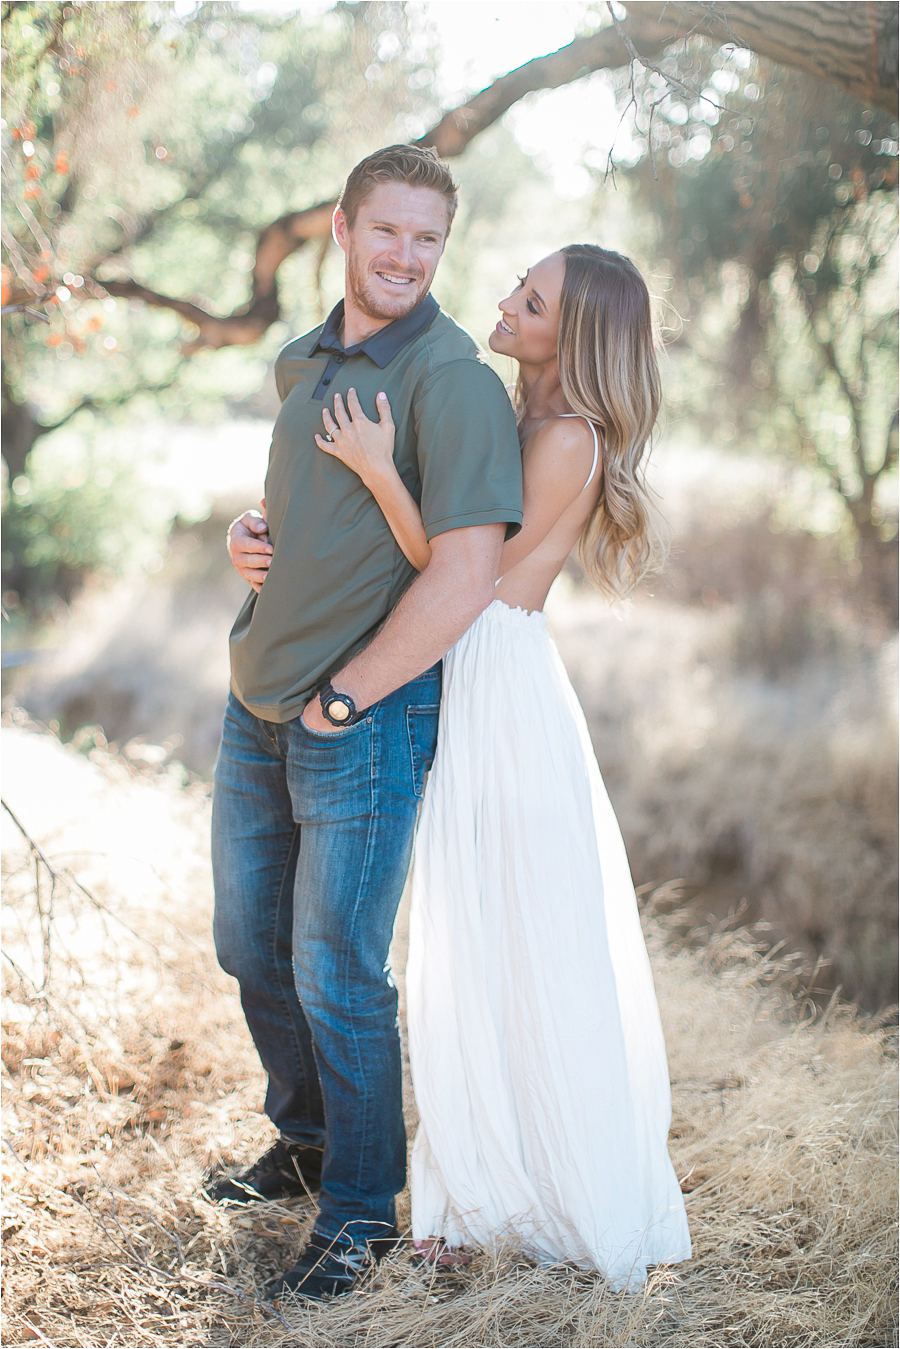 Kevan Miller and Haley Kettlekamp_Engagement Photography_Valencia-11